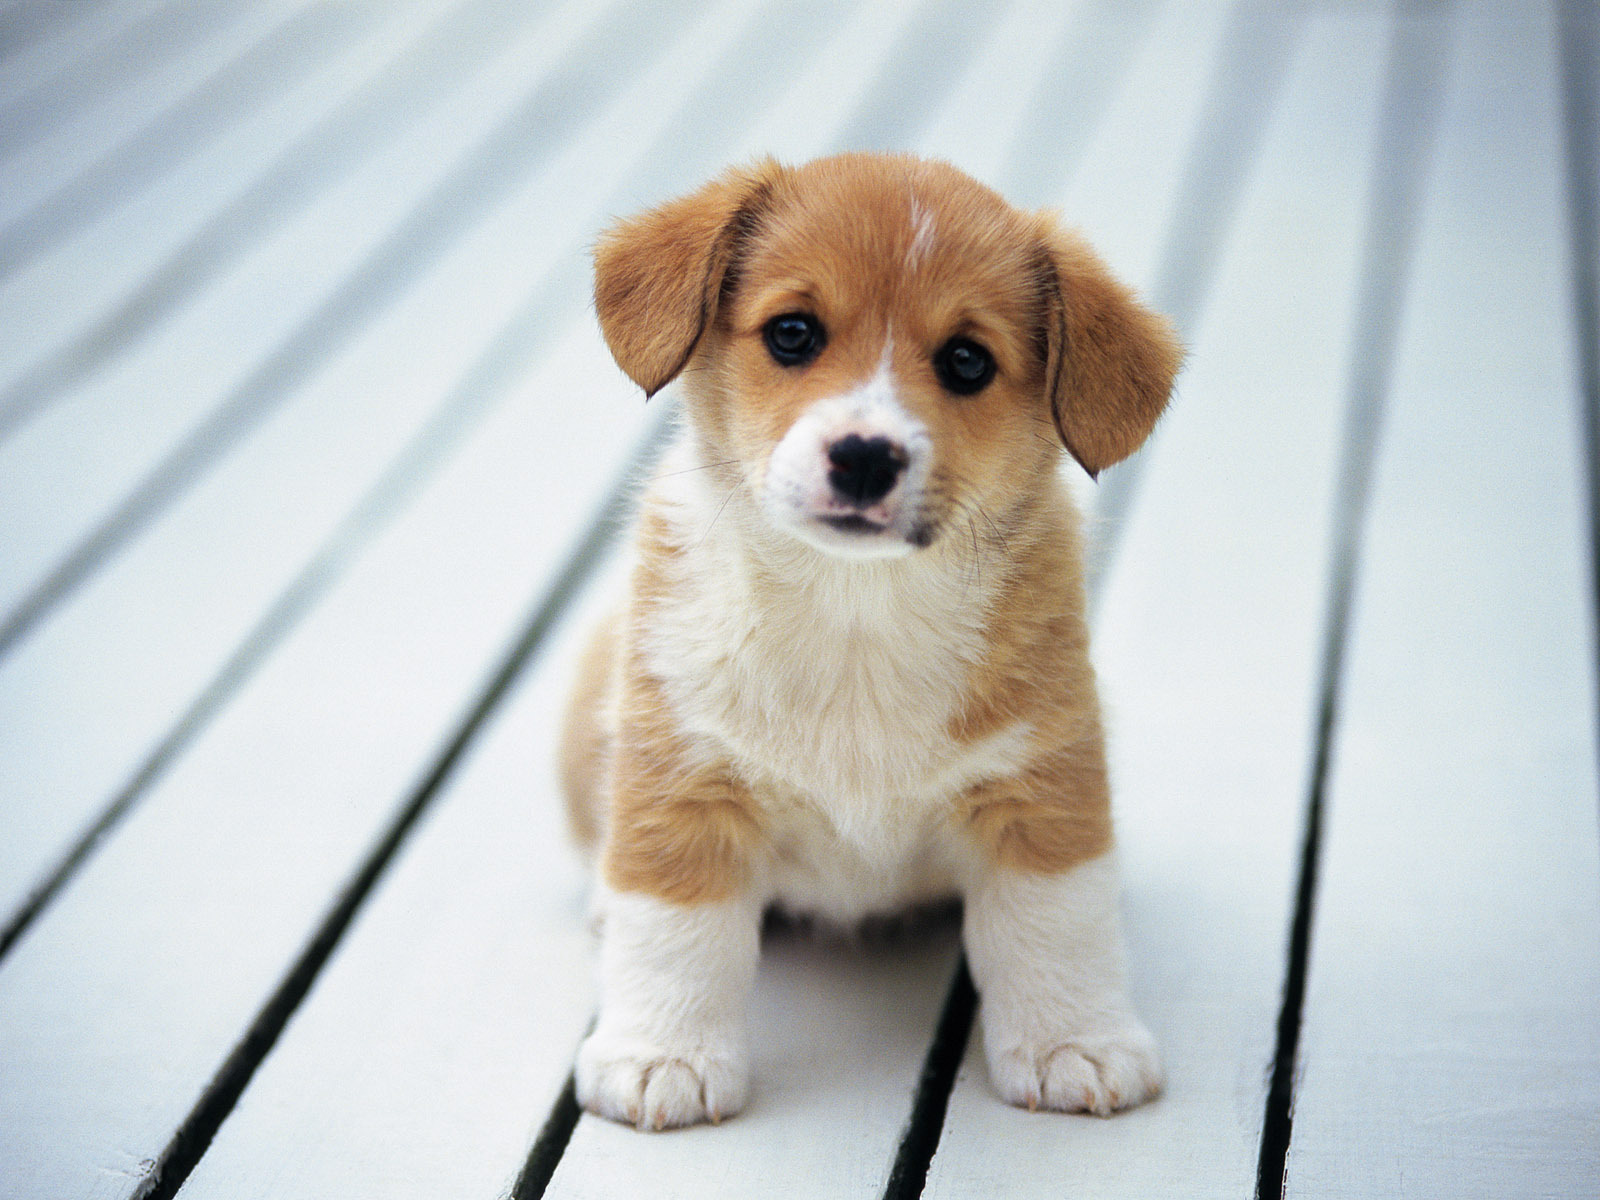 Cute Puppy Wallpapers wallpaper Cute Puppy Wallpapers hd wallpaper 1600x1200